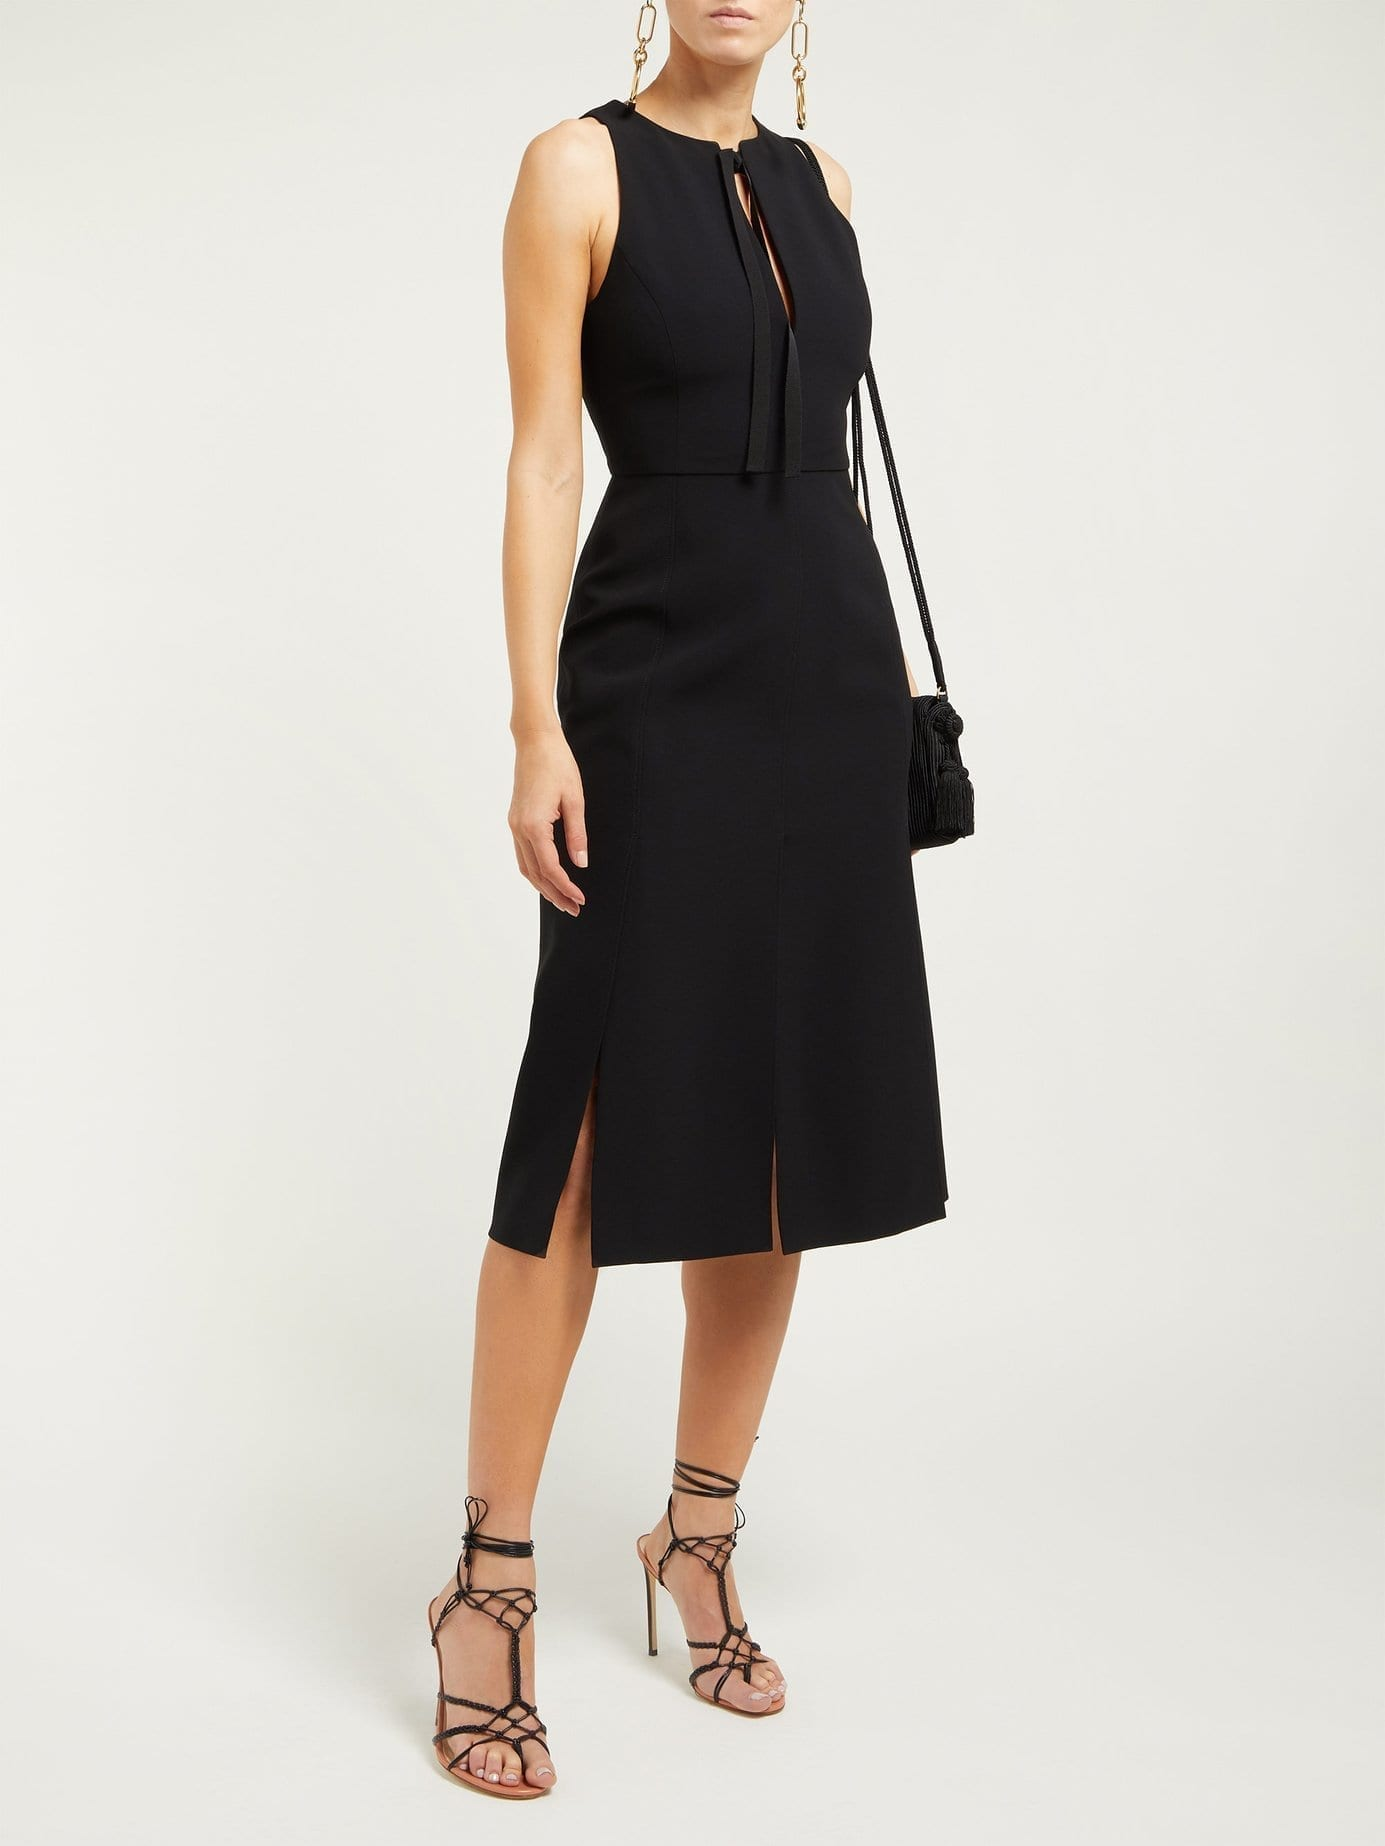 ALTUZARRA Margherita Tie-Neck Crepe Black Dress